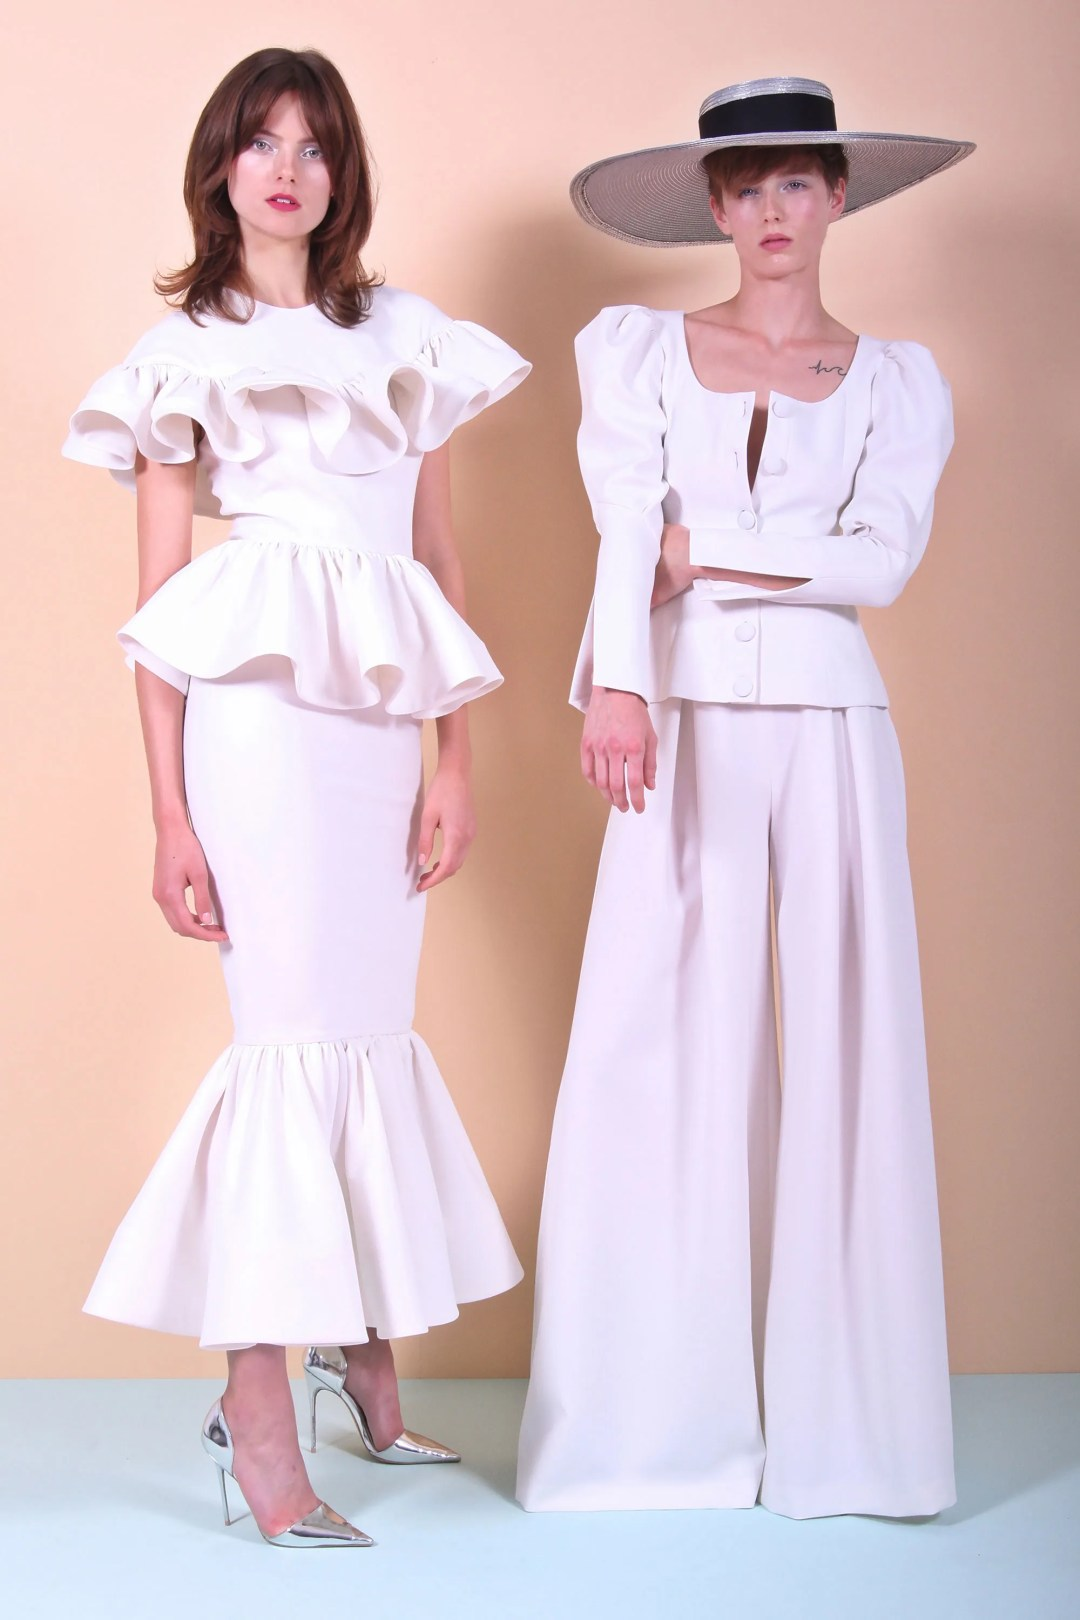 FULL COLLECTION: CHRISTIAN SIRIANO RESORT 2018 READY-TO-WEAR   #Runway #Fashion #Style #Couture #FashionWeek #RTW @CSirian o   via @FashionWeekPro ? FashionWeek.pro